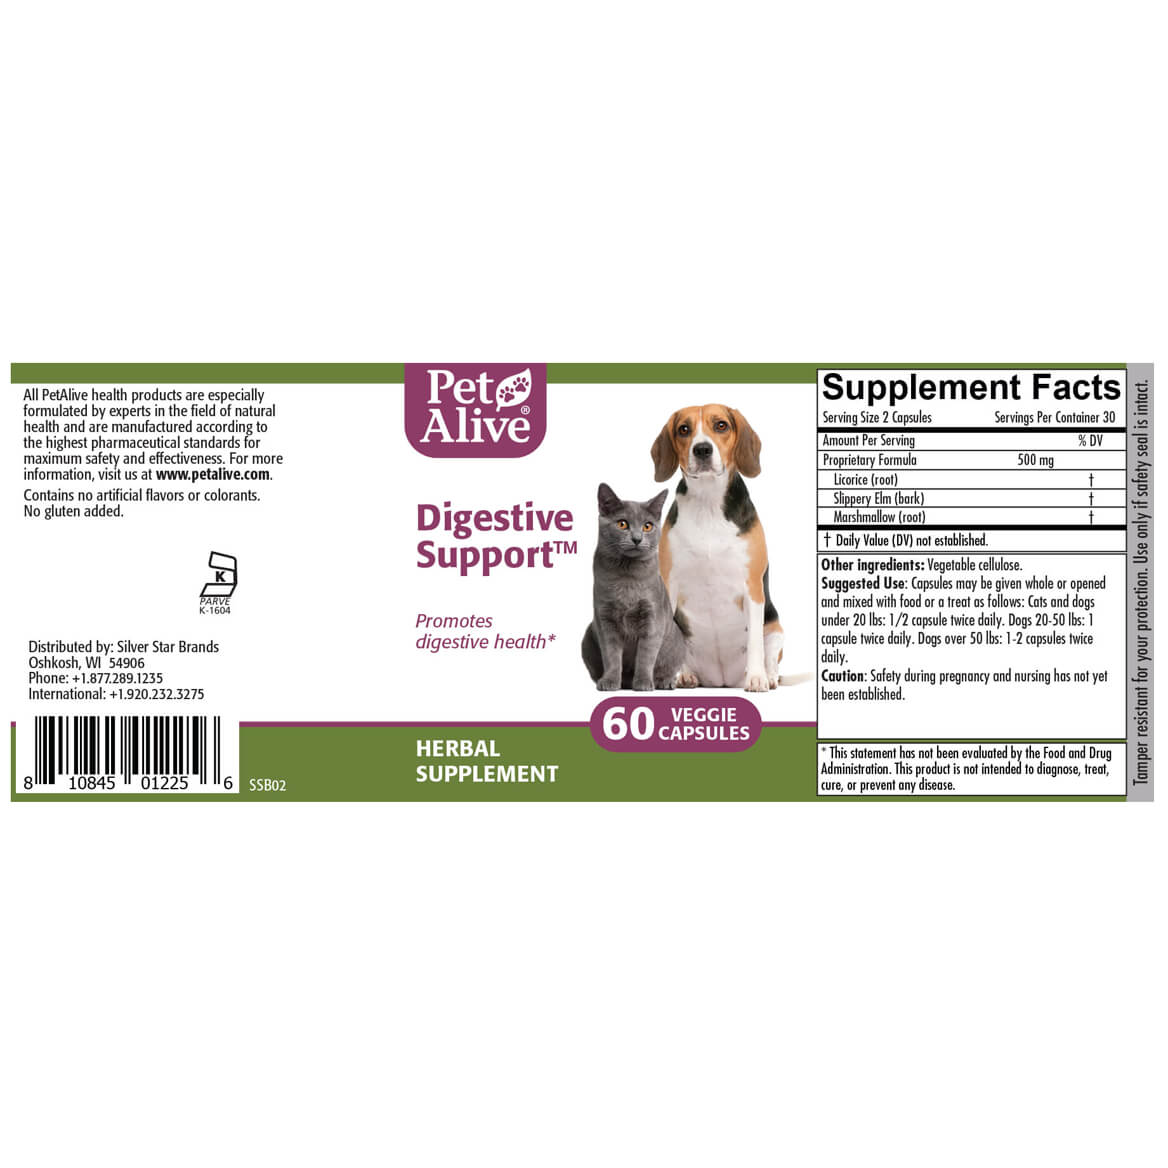 Digestive Support™ for Cat & Dog Digestion-351883